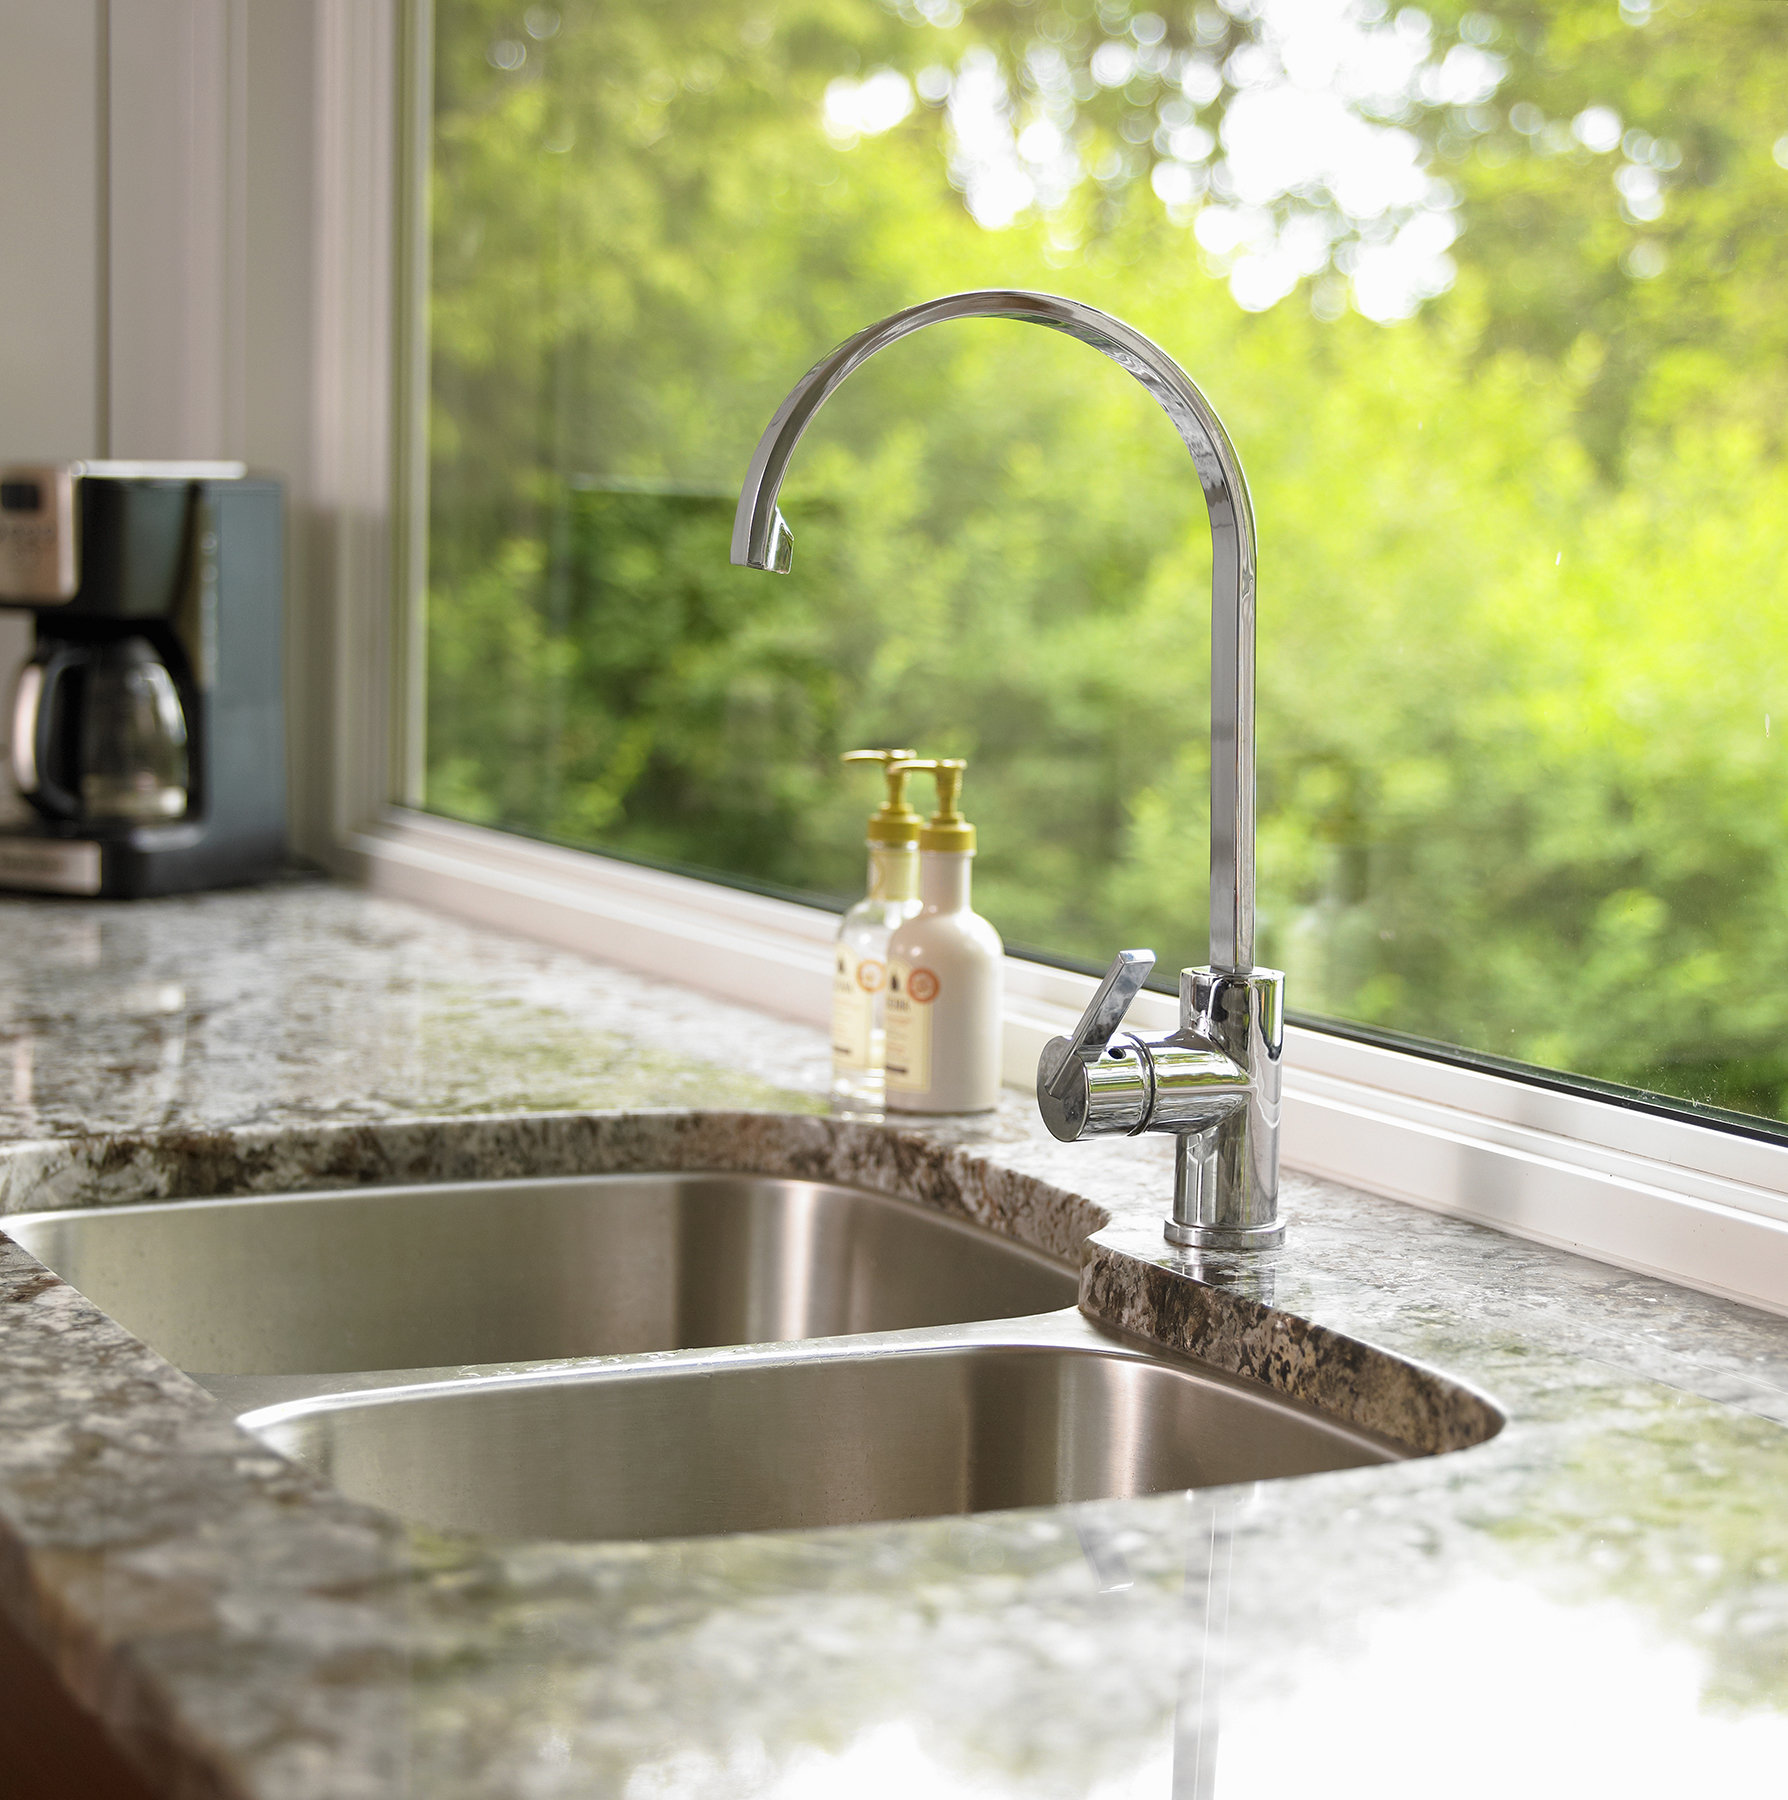 Kitchen Sinks With Granite Countertops Around The Sink And Faucet How To Clean The Grossest Kitchen